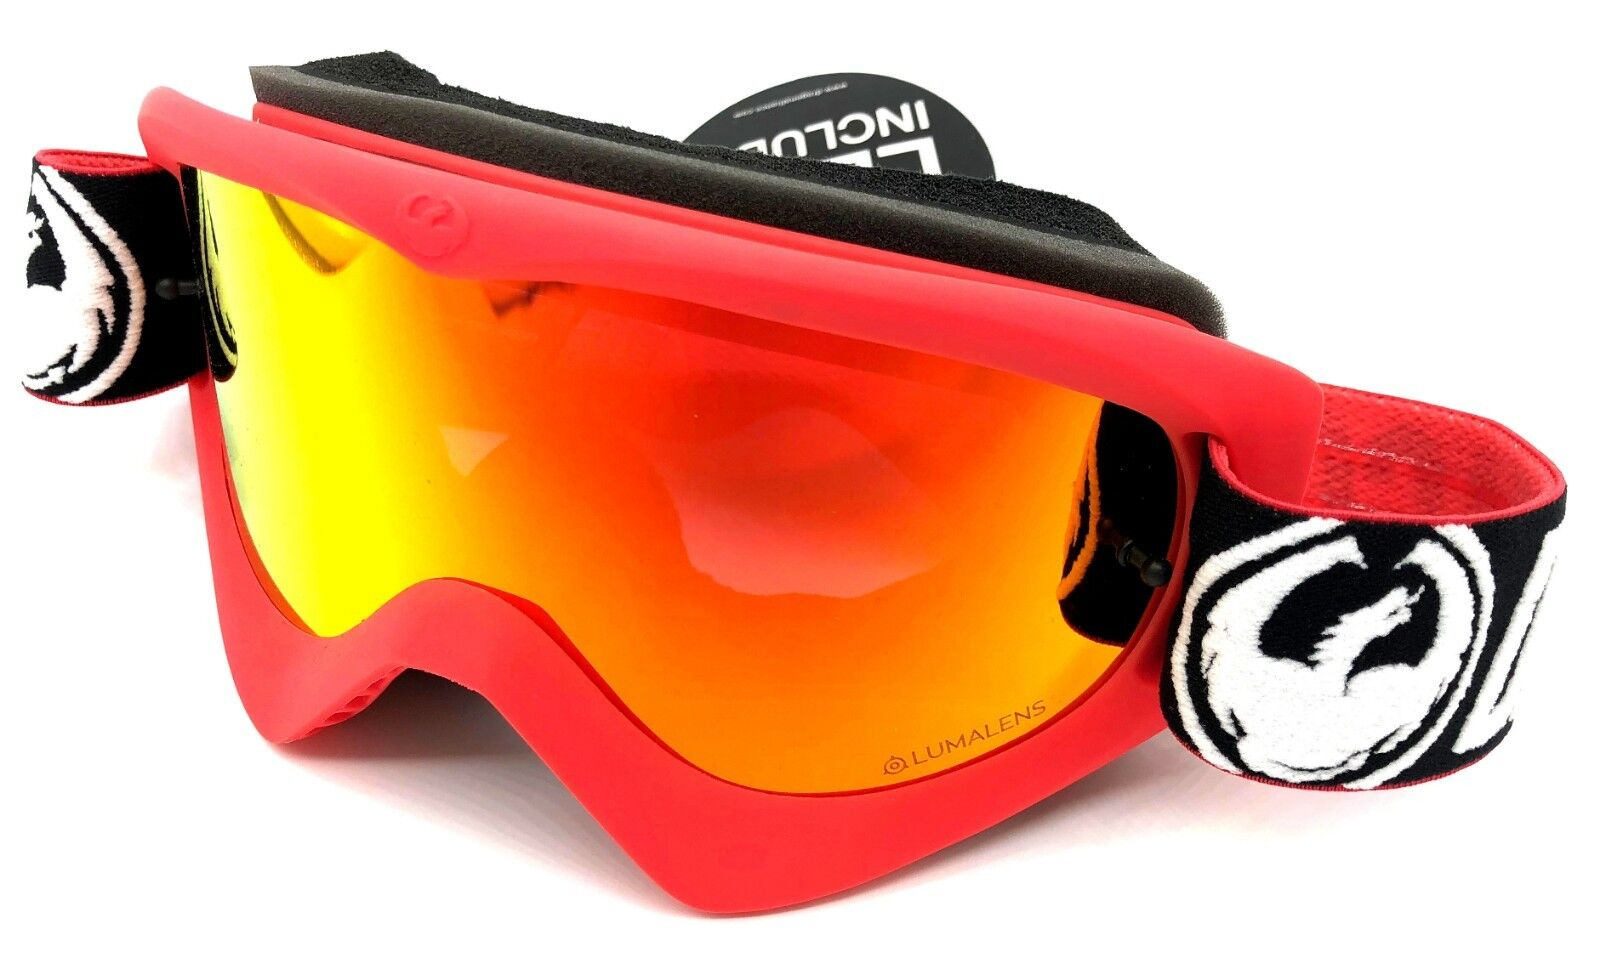 NEW Dragon MDX MX-17002 Factory - Lumalens Red Ion +1 Clear Lens Snow Goggles